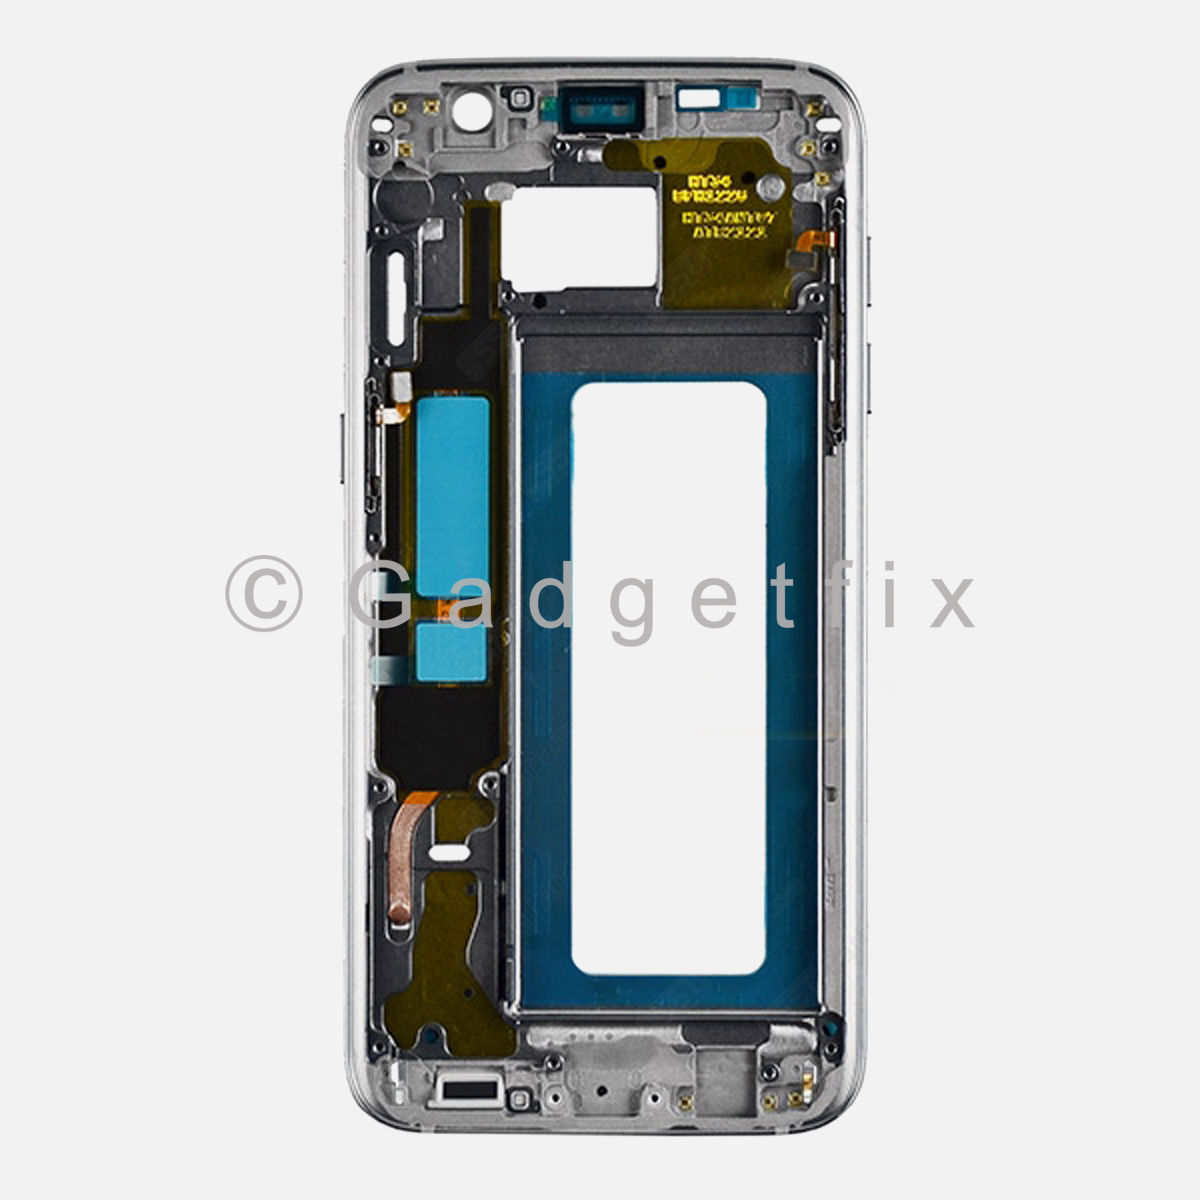 Black Samsung Galaxy S7 Edge G935A G935T G935V G935P G935F Middle Housing Frame Bezel Mid Chassis